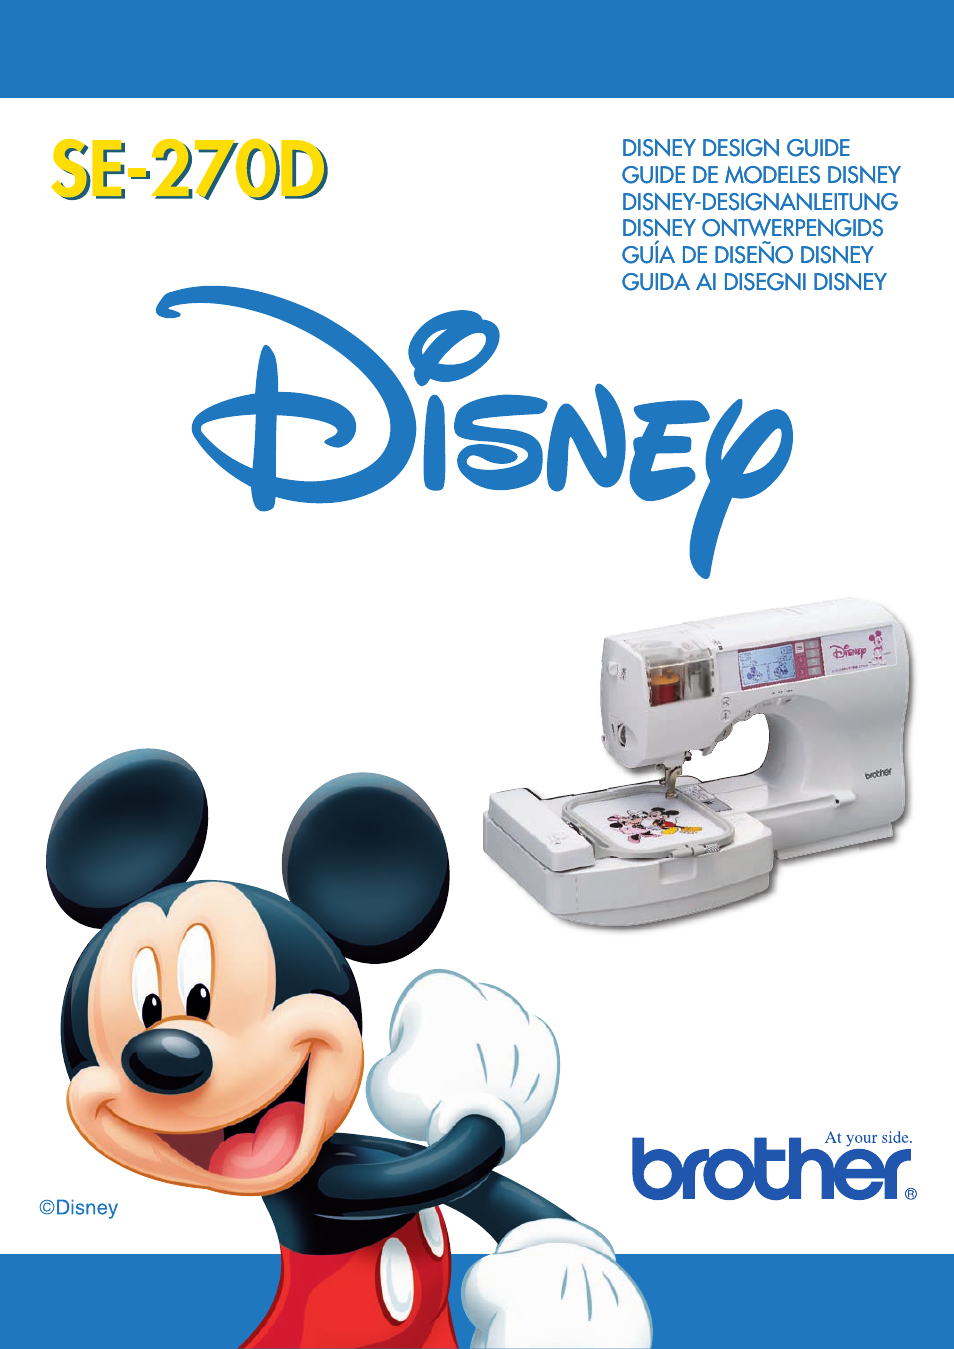 Brother Disney Se 270d User Manual 8 Pages